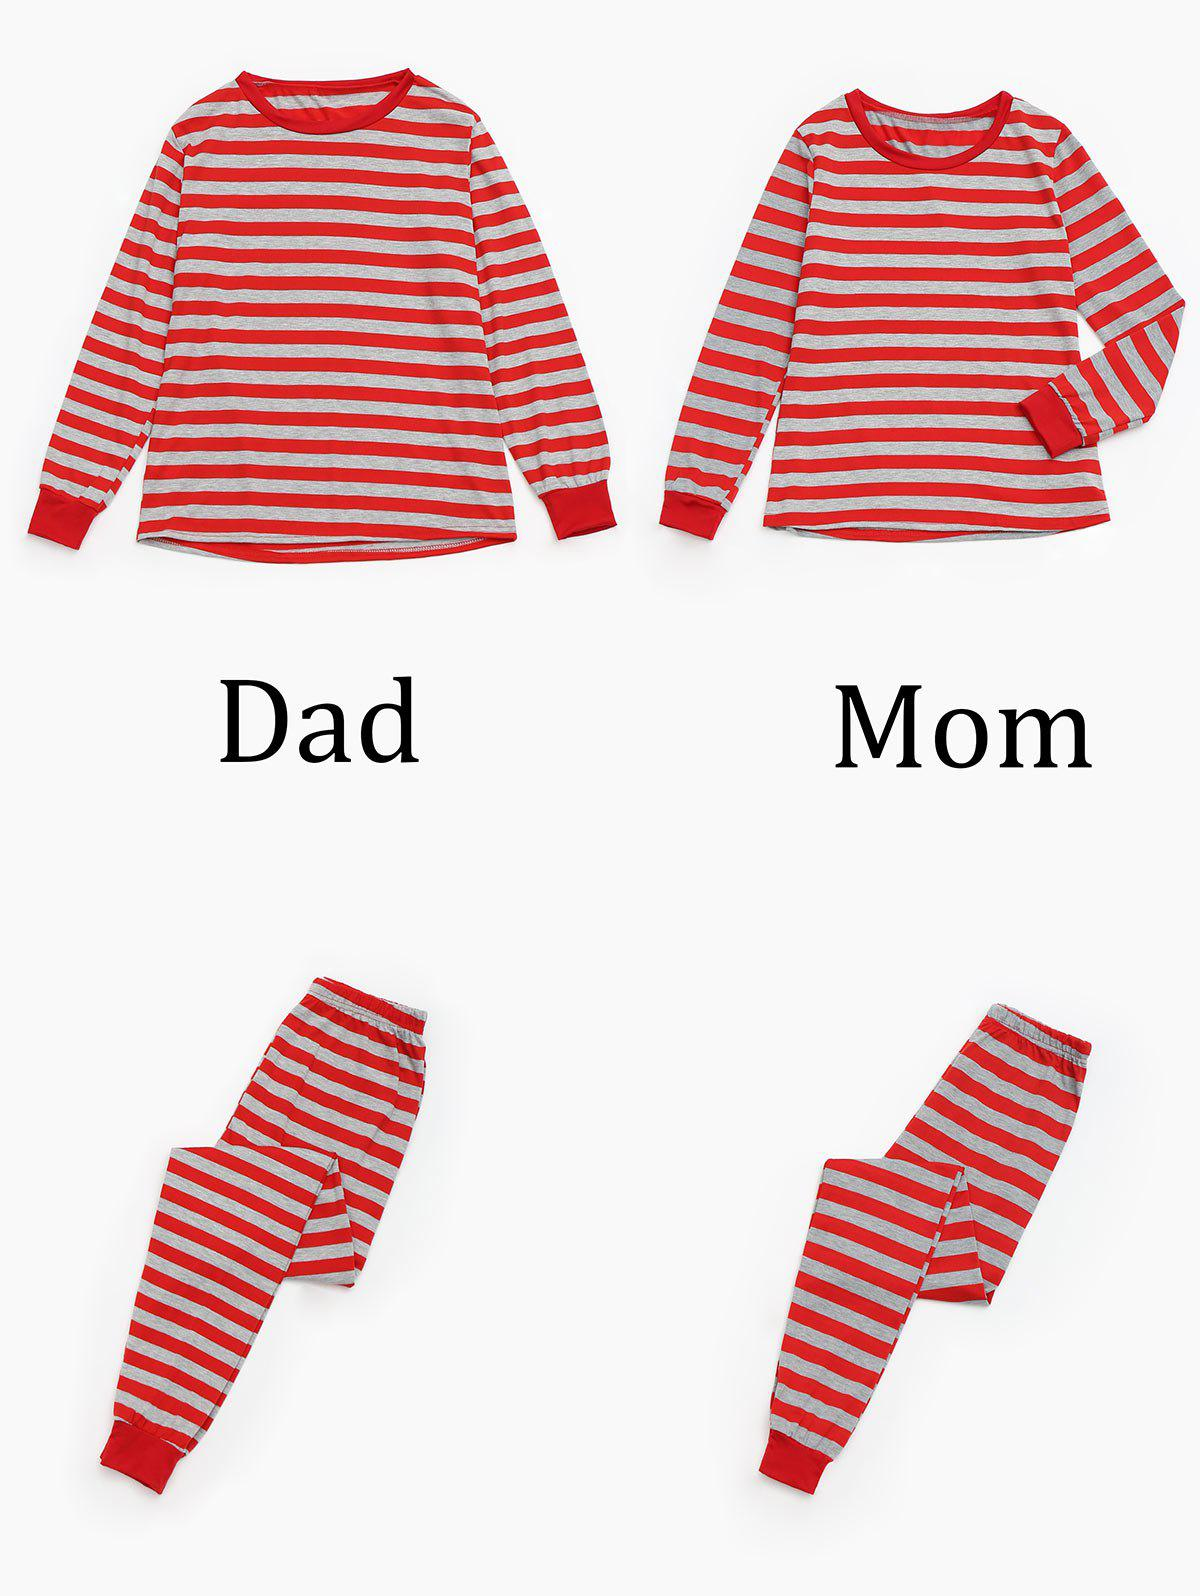 XMAS Striped Matching Family Christmas Pajama Set - RED MOM L